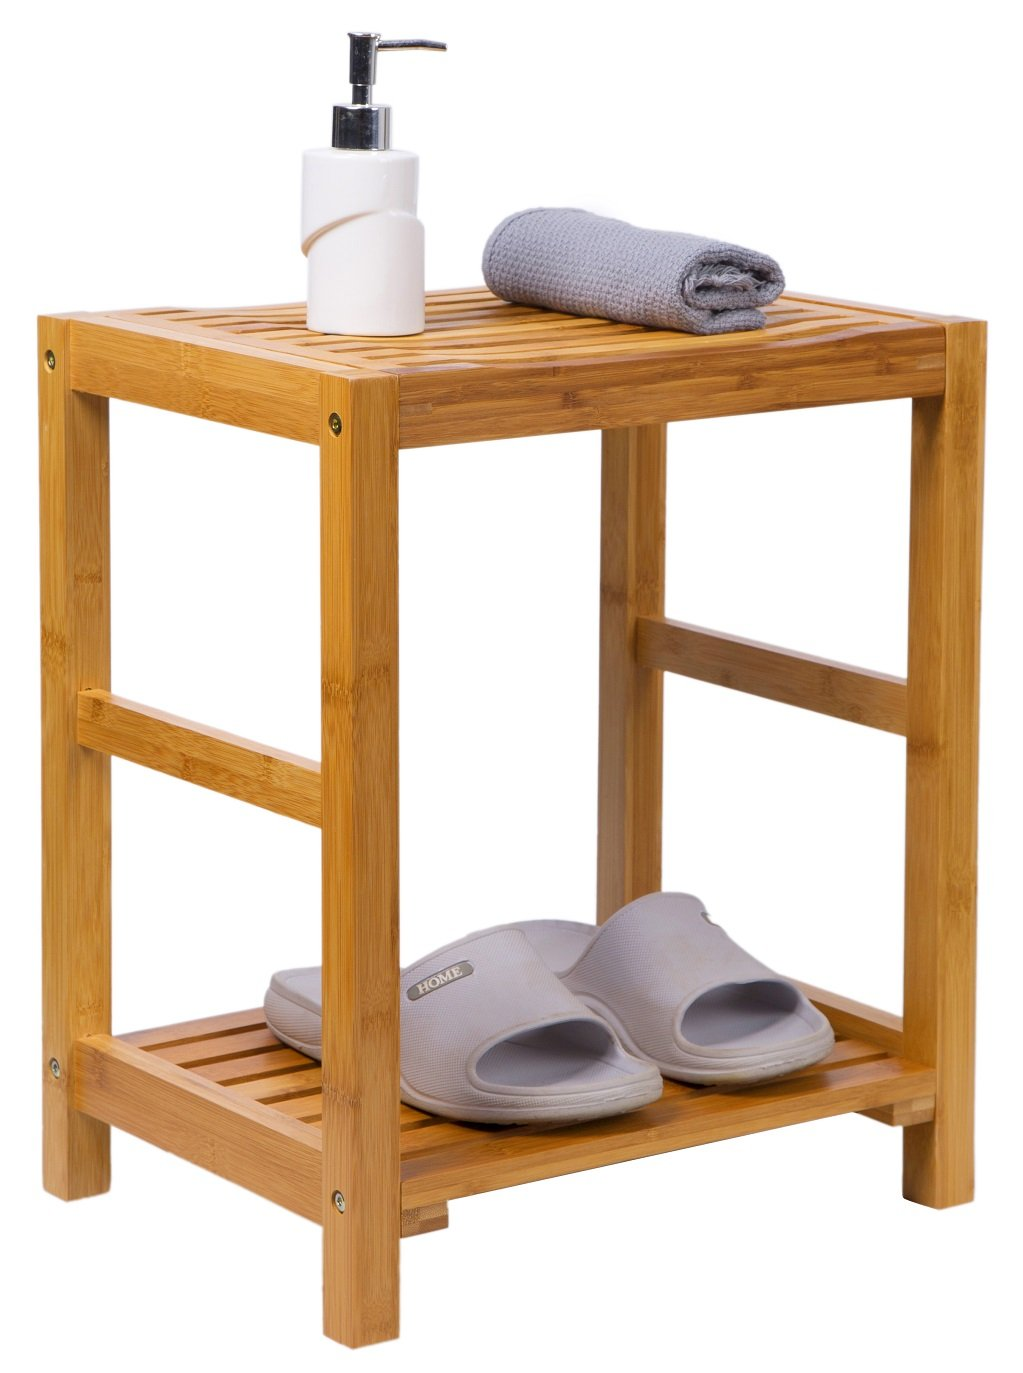 Bamboo Shower Bench Seat Stool with Storage Shelf Applicable to Indoor or Outdoor Use